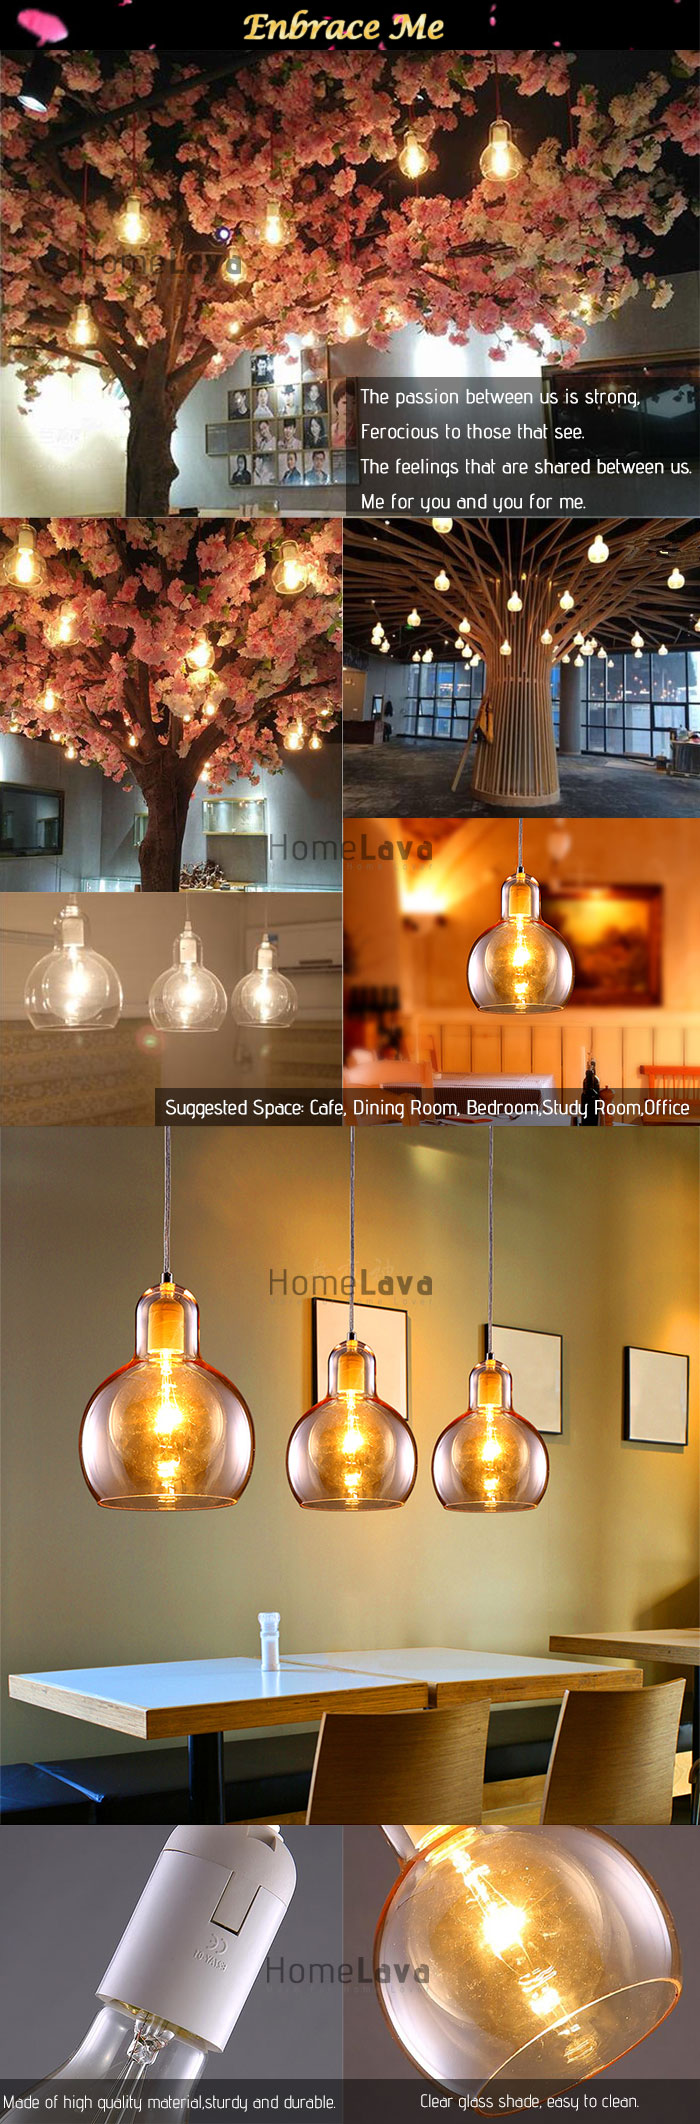 (In Stock)  Mouth-Blown Glass Modern Minimalist Pendant Light with 1 Light Dining Room Lighting Ideas Living Room Lighting Bedroom Ceiling Lights(Enbrace Me)